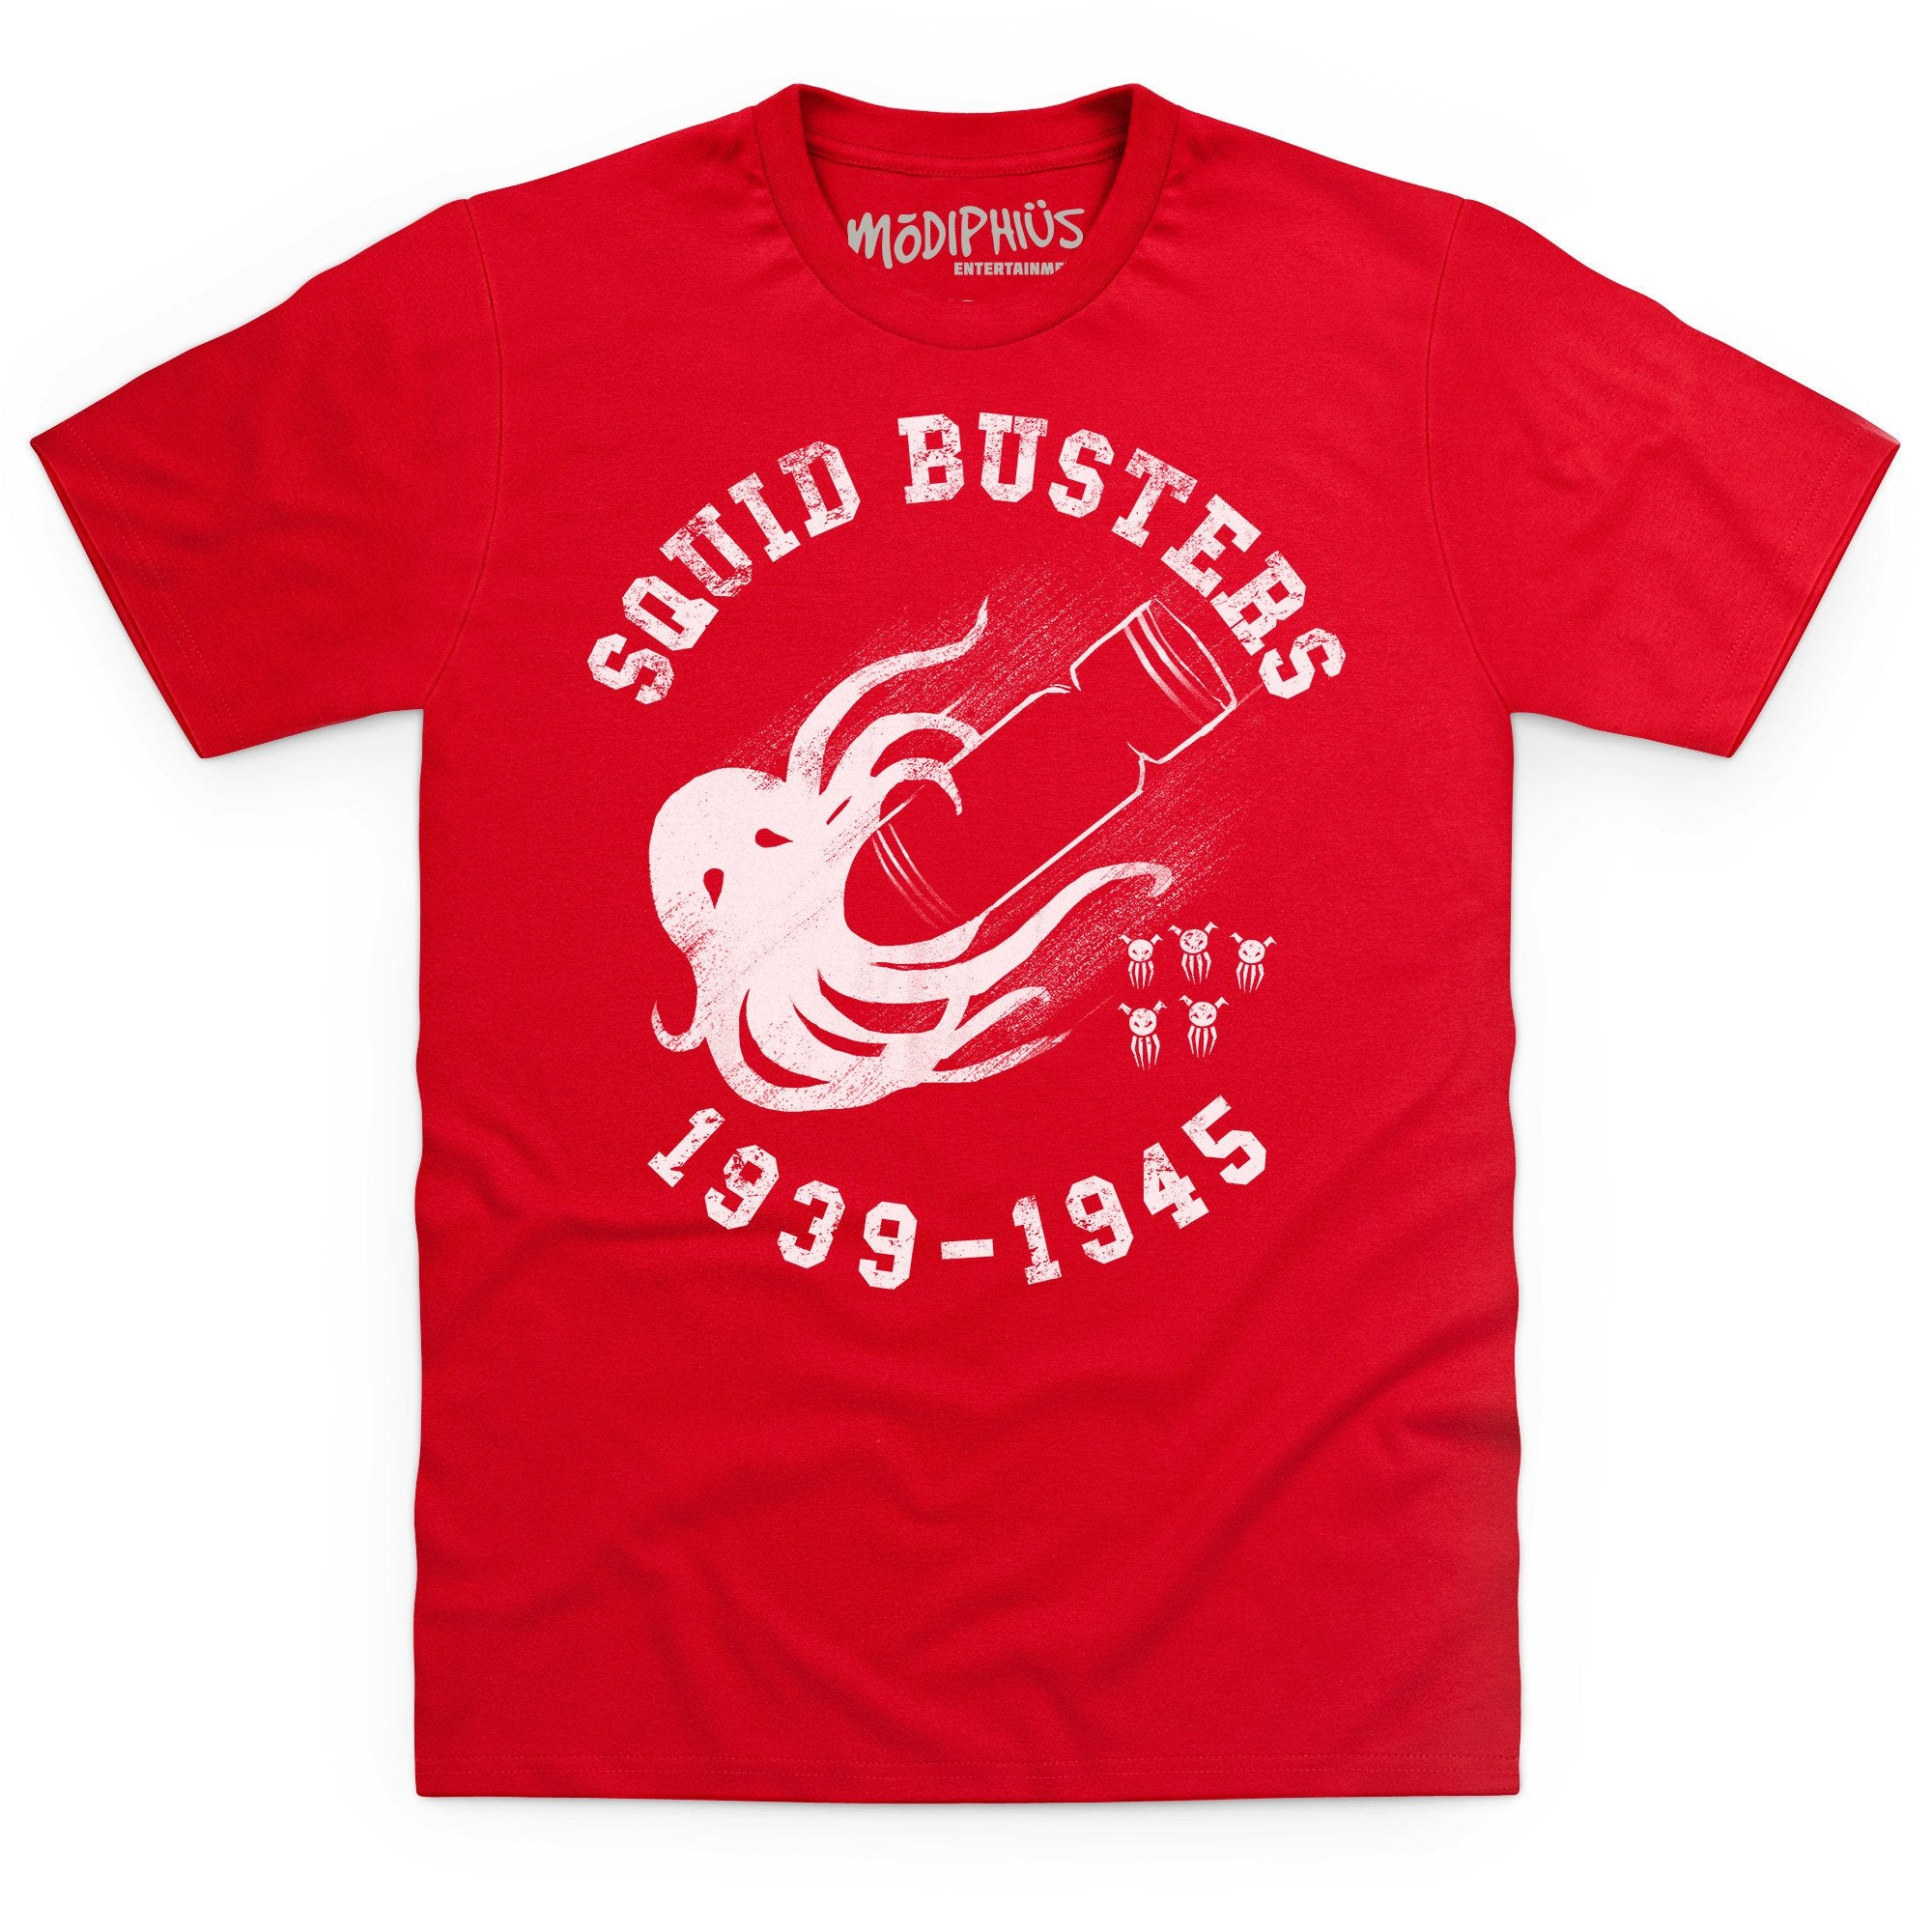 Achtung! Cthulhu: Squid Buster t-shirt